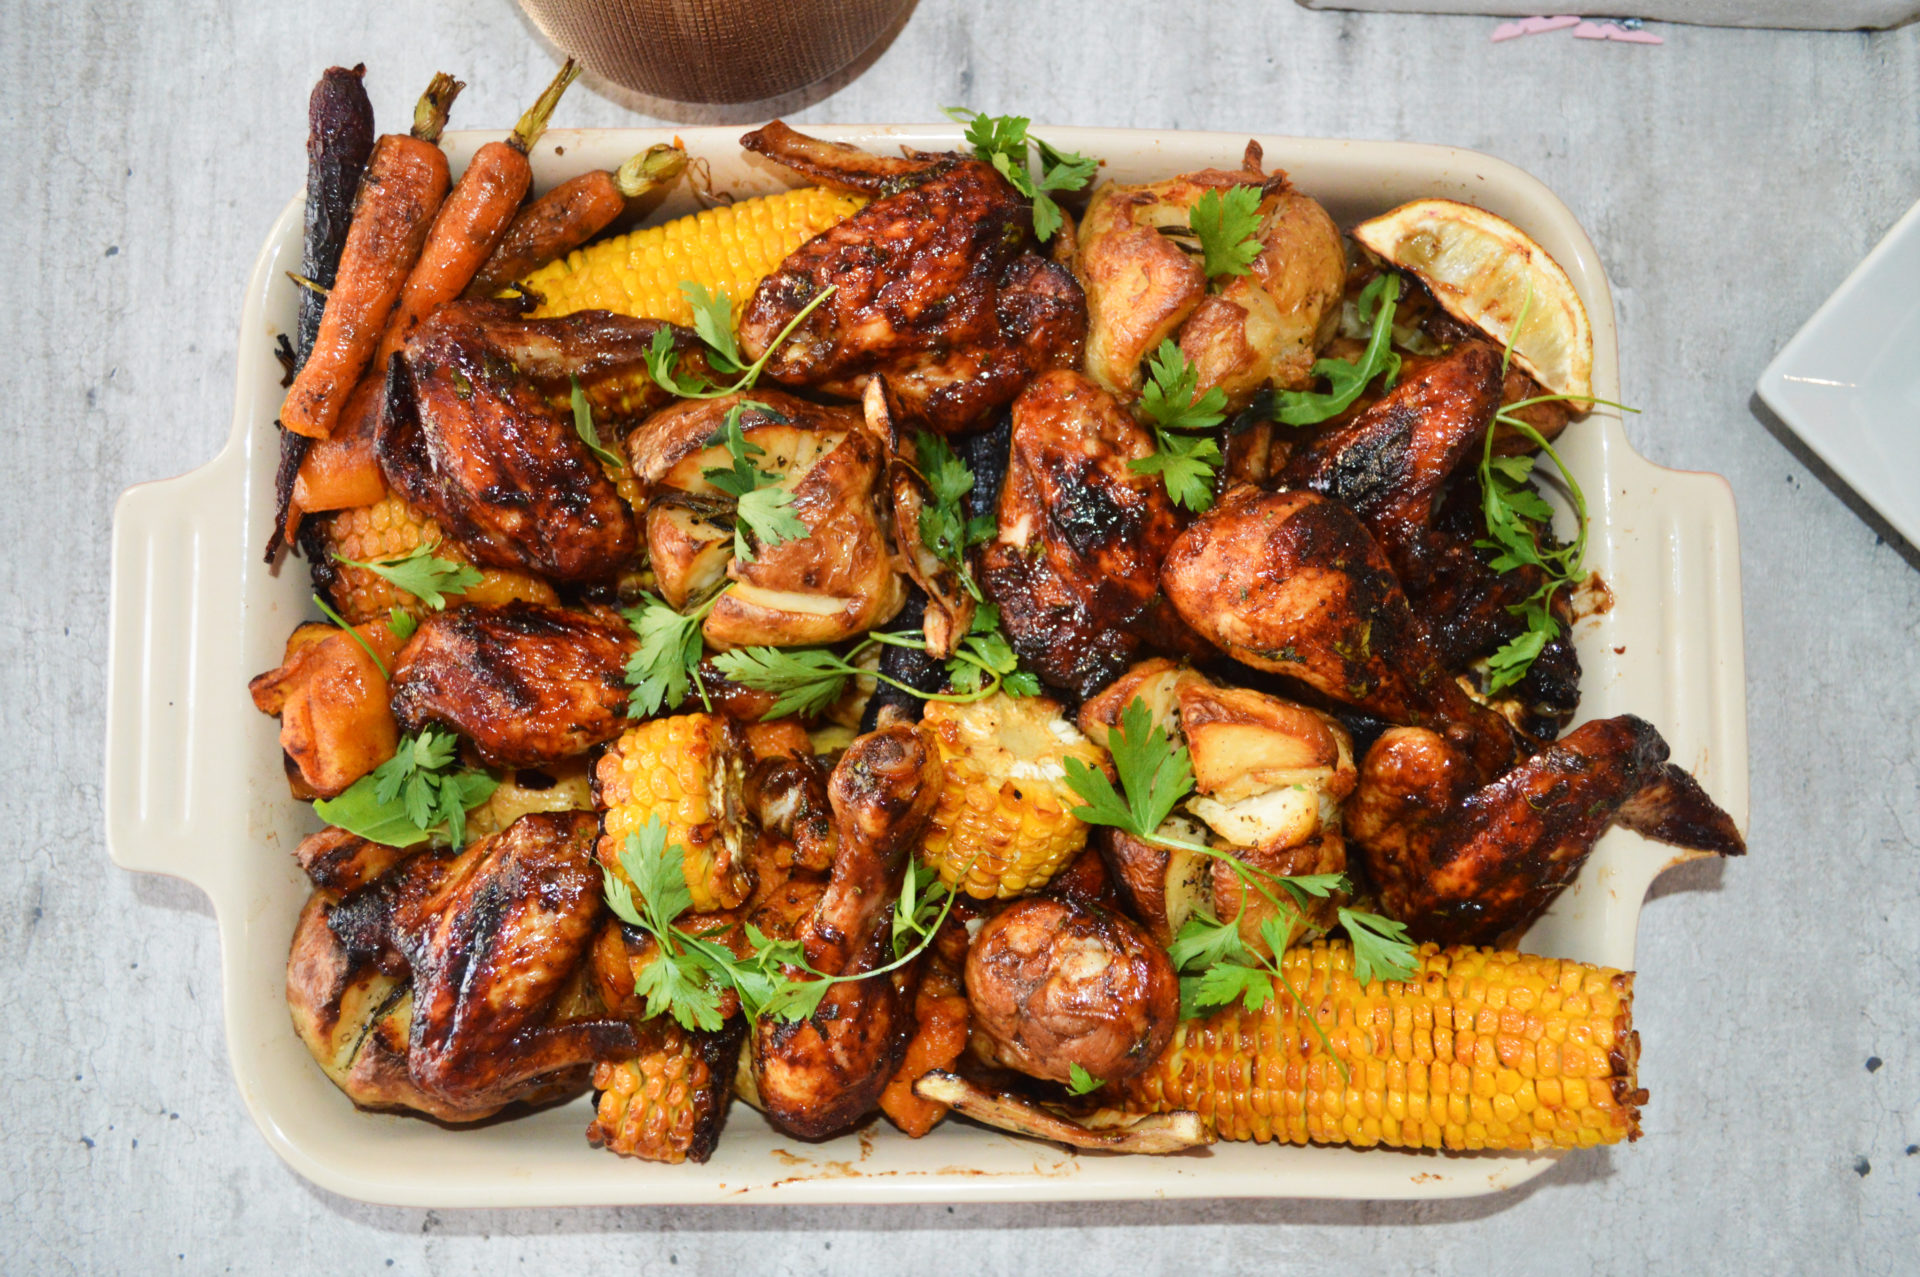 Miranda's sticky roasted chicken with a medley of vegetables.